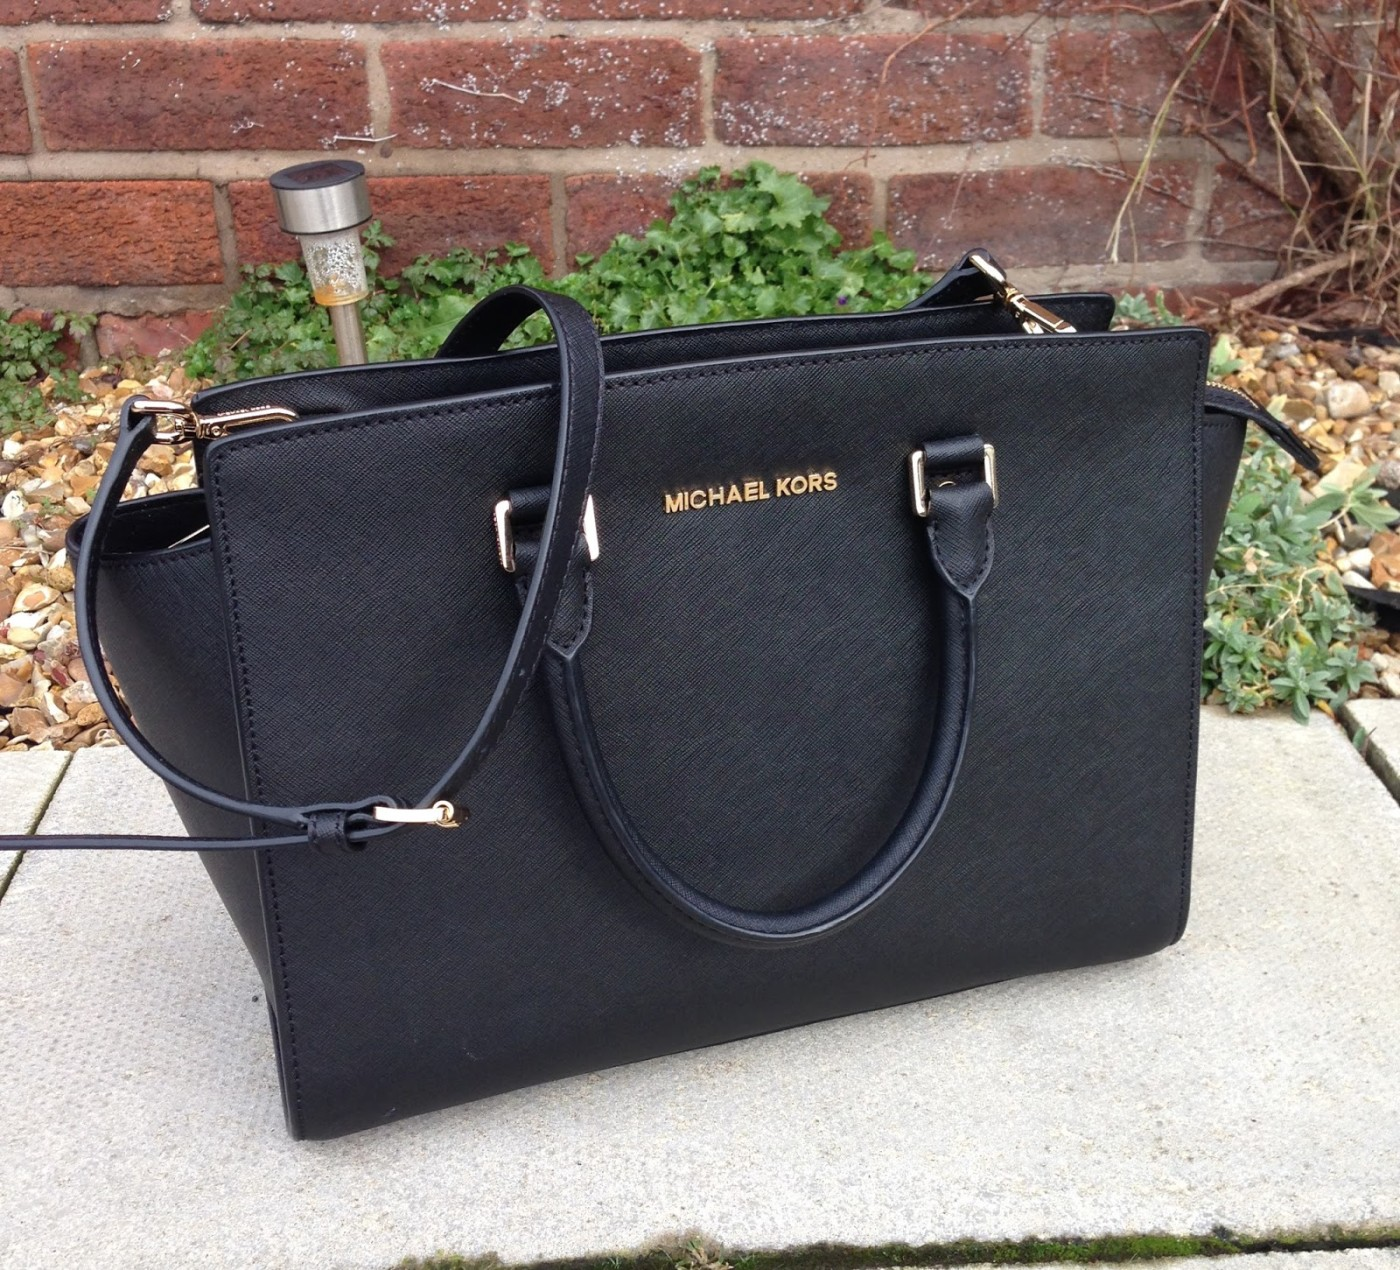 Michael Kors, Michael Kors Selma Bag, through chelsea's eyes,